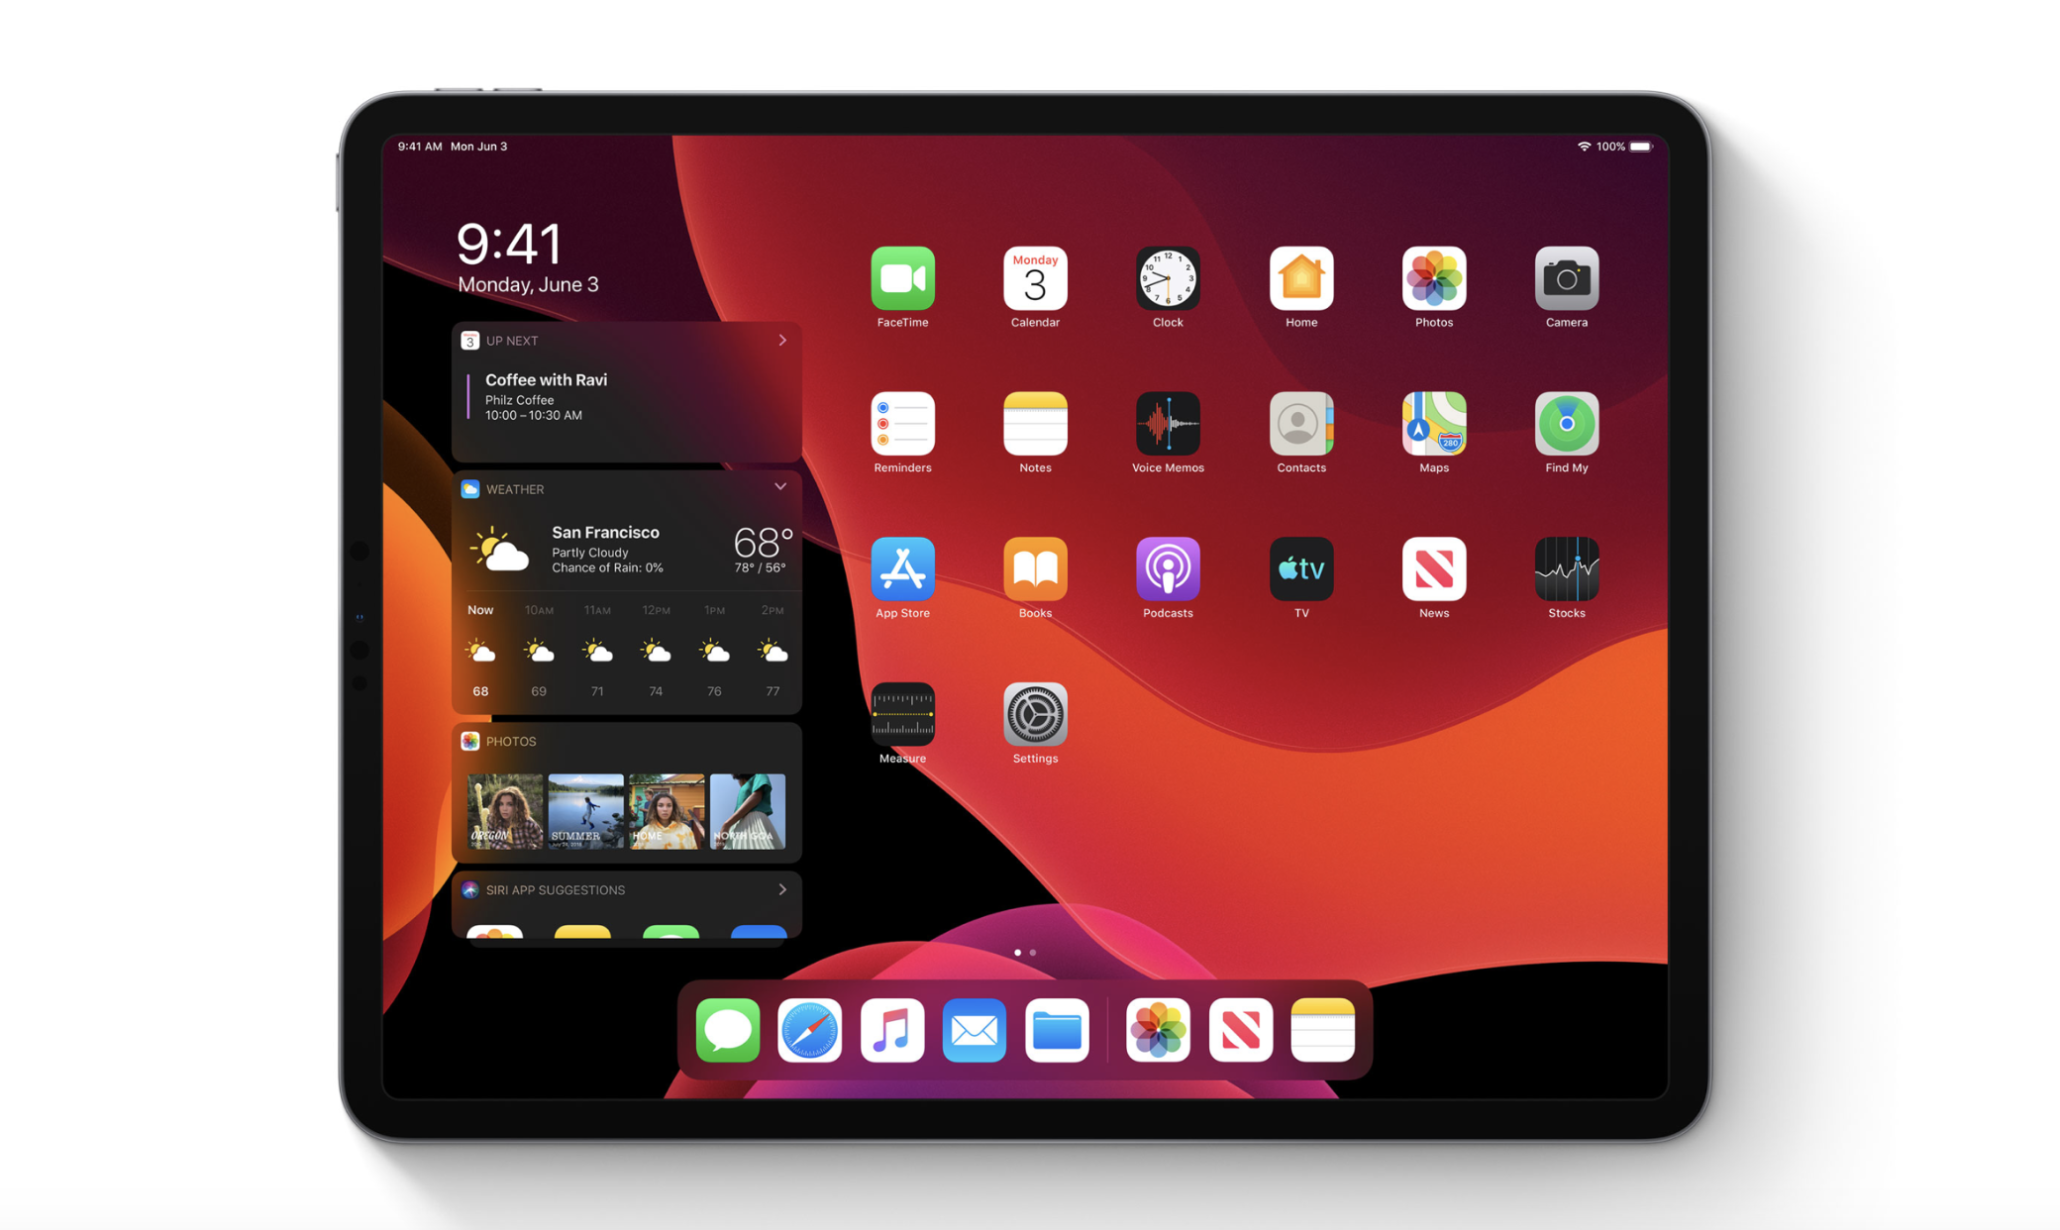 iPadOS 13 Features Mouse Support as an Accessibility Feature